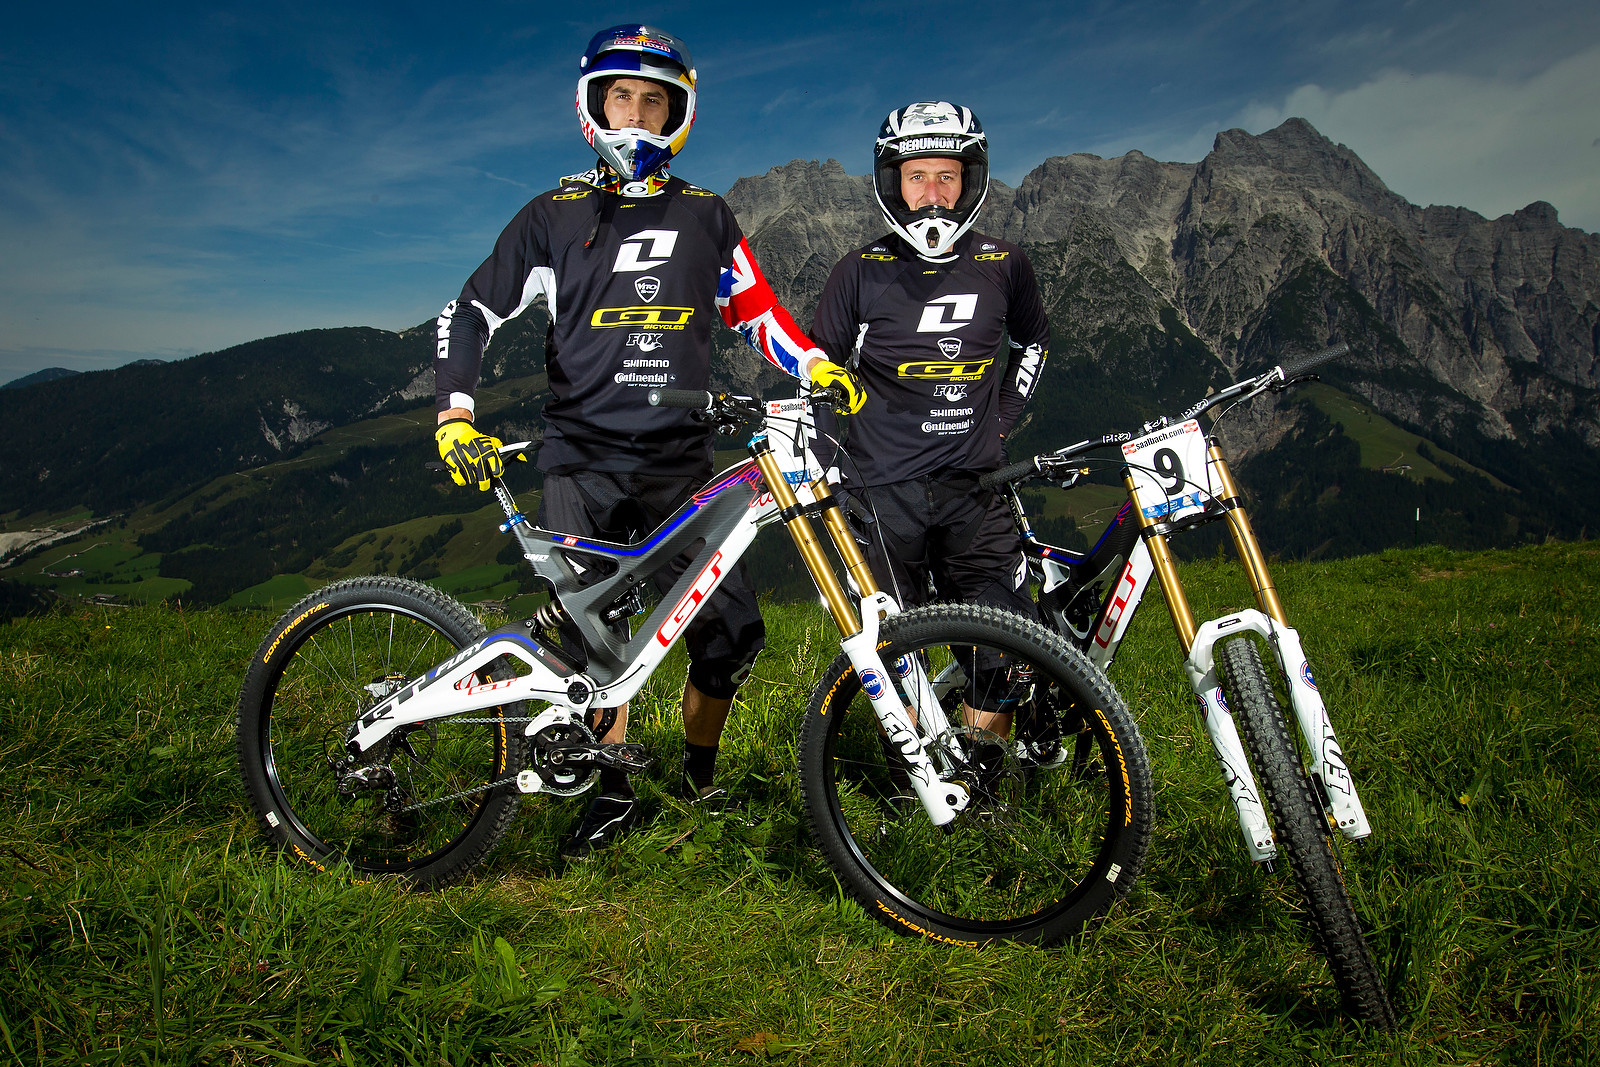 Gee Atherton and Marc Beaumont with their GT Fury DH Bikes - World Championships Riders and Bikes - Mountain Biking Pictures - Vital MTB